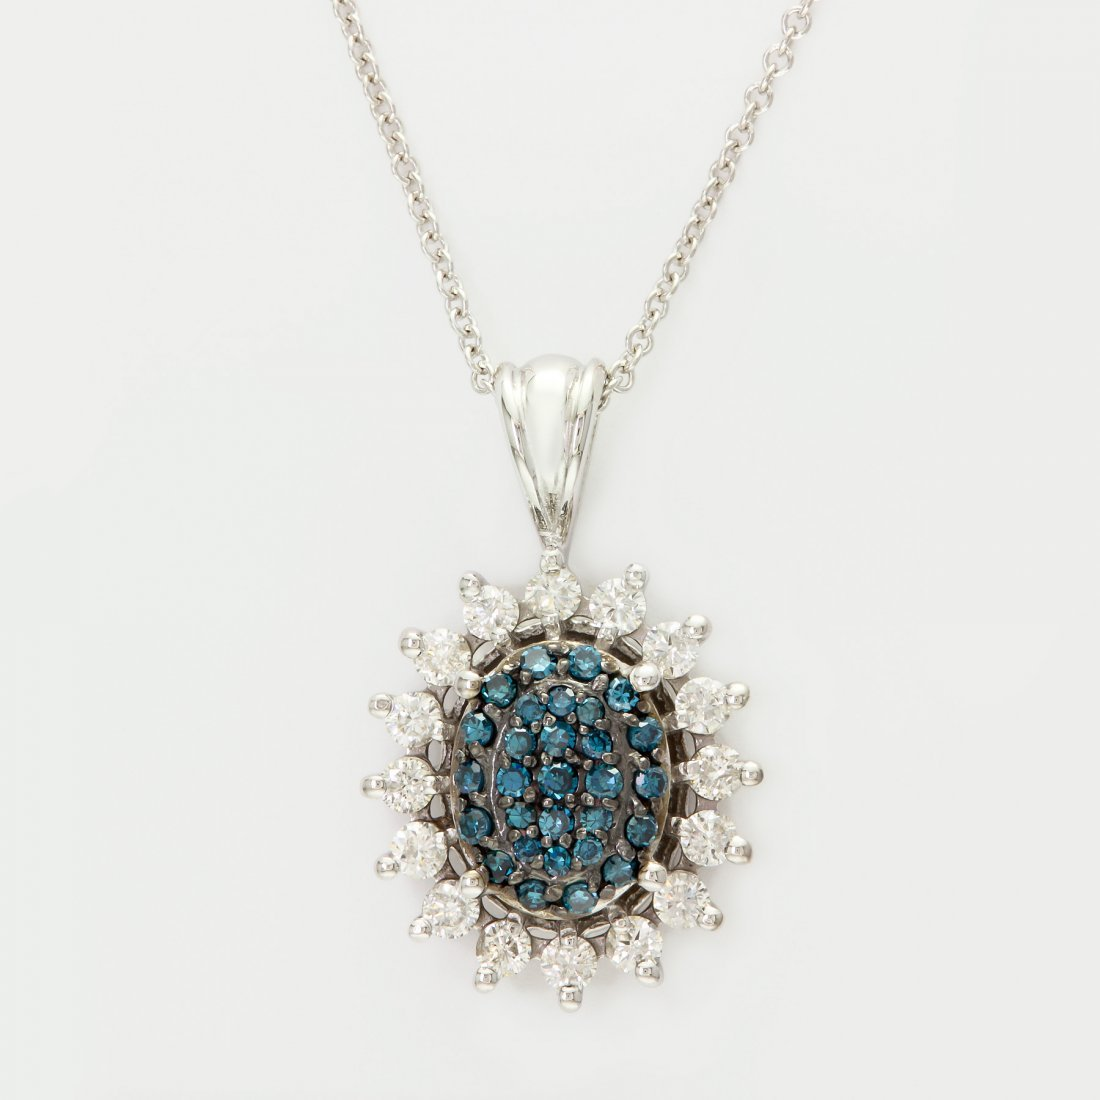 14K WHITE GOLD DIAMOND,BLUE DIAMOND, PENDANT